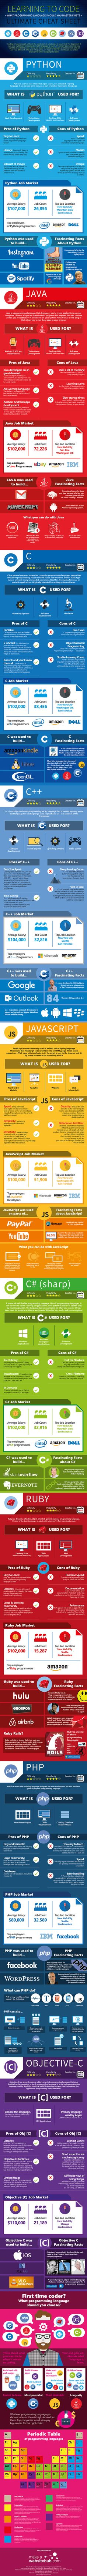 Learning to Code 2016 #infographic